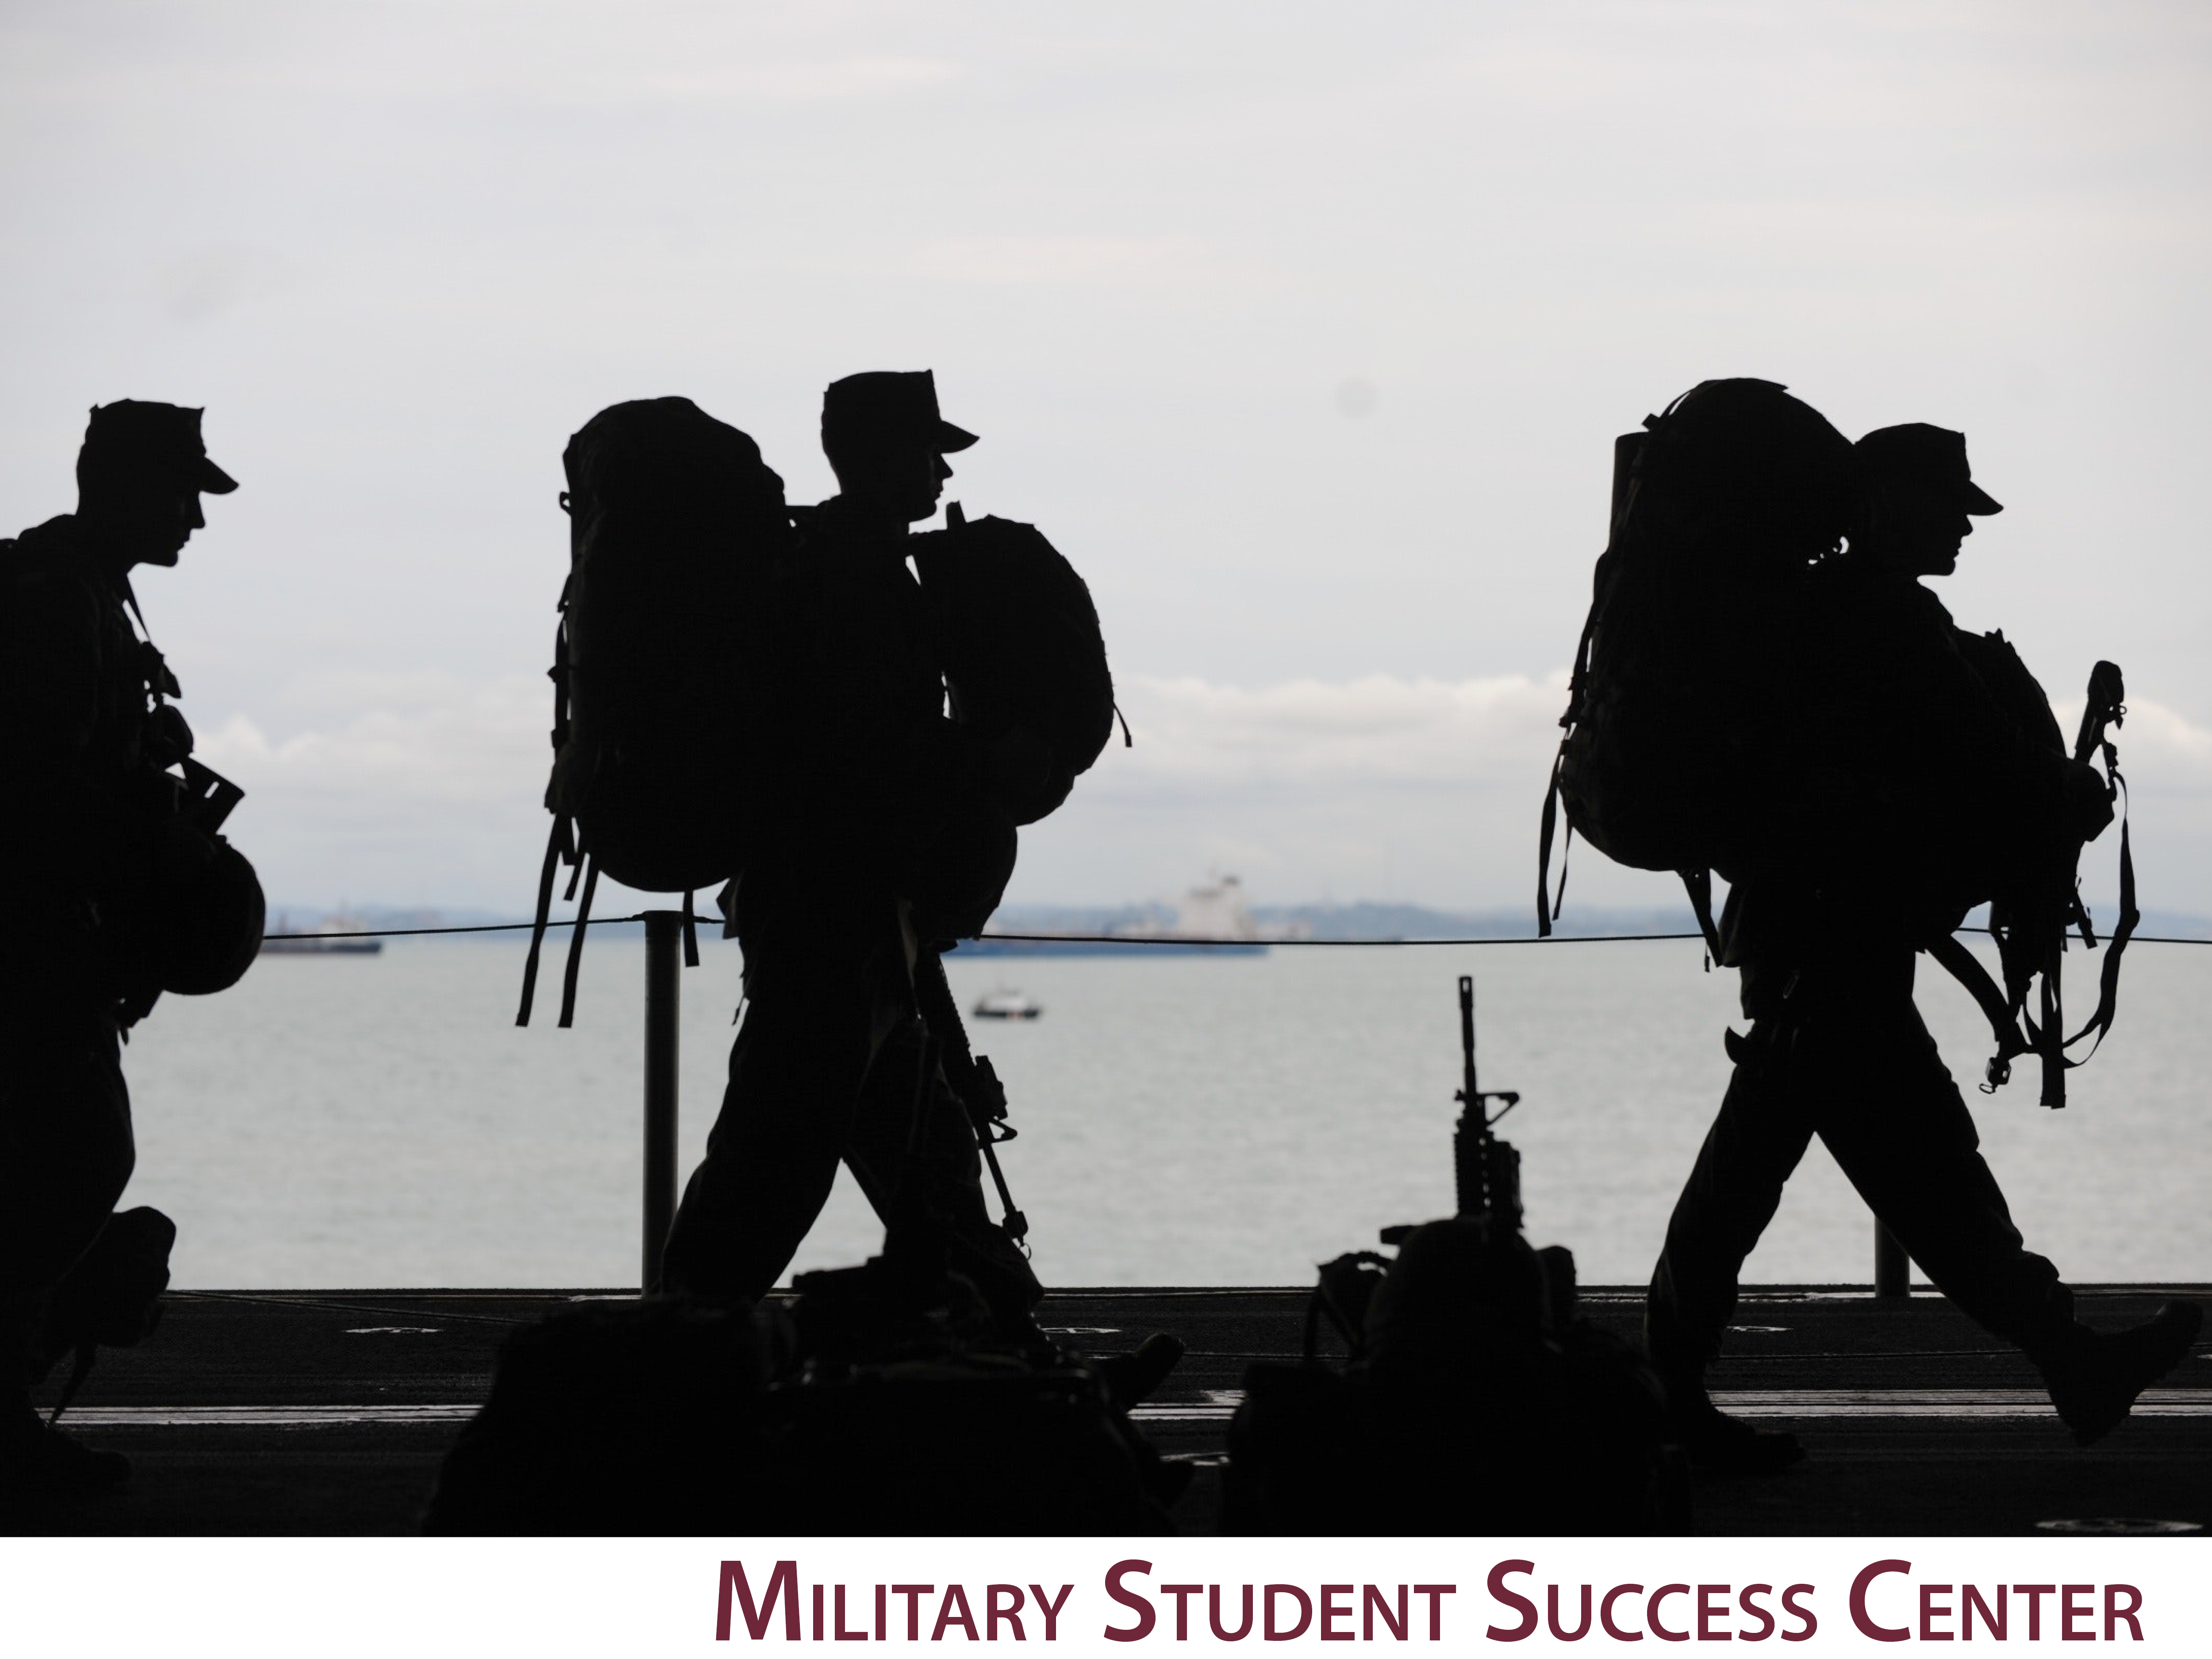 Military Student Success Center